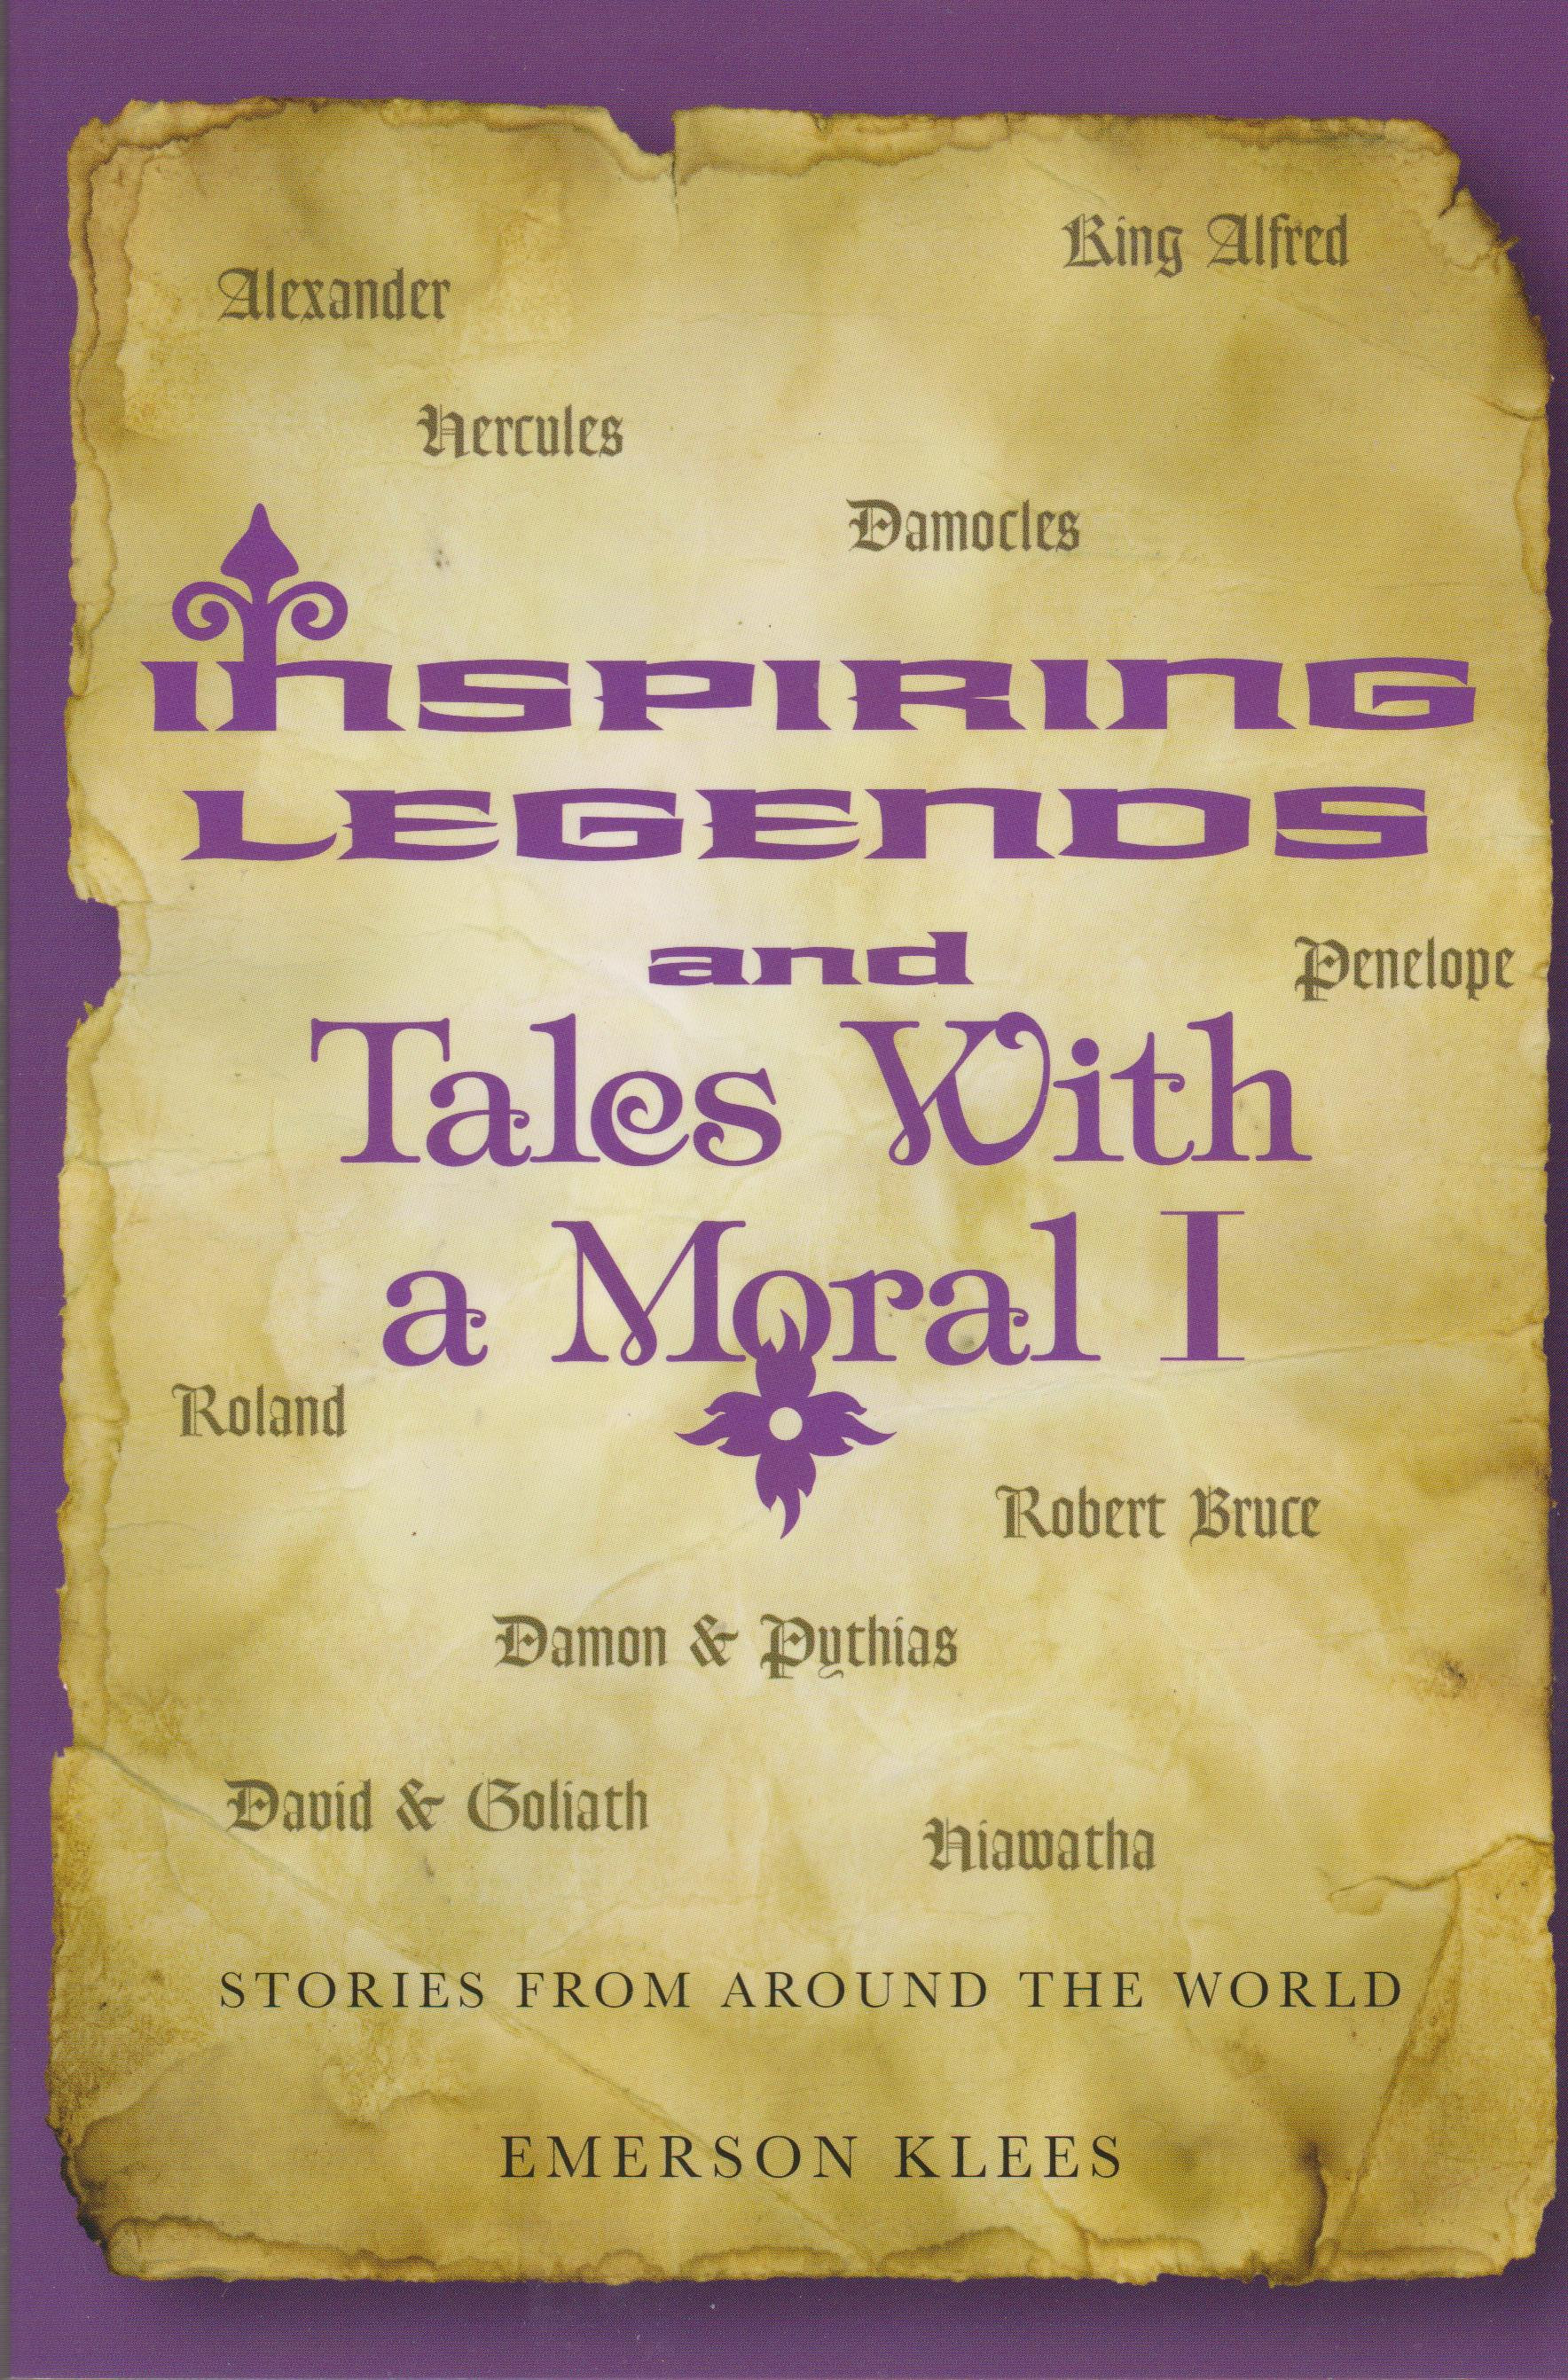 Inspiring Legends and Tales With a Moral I